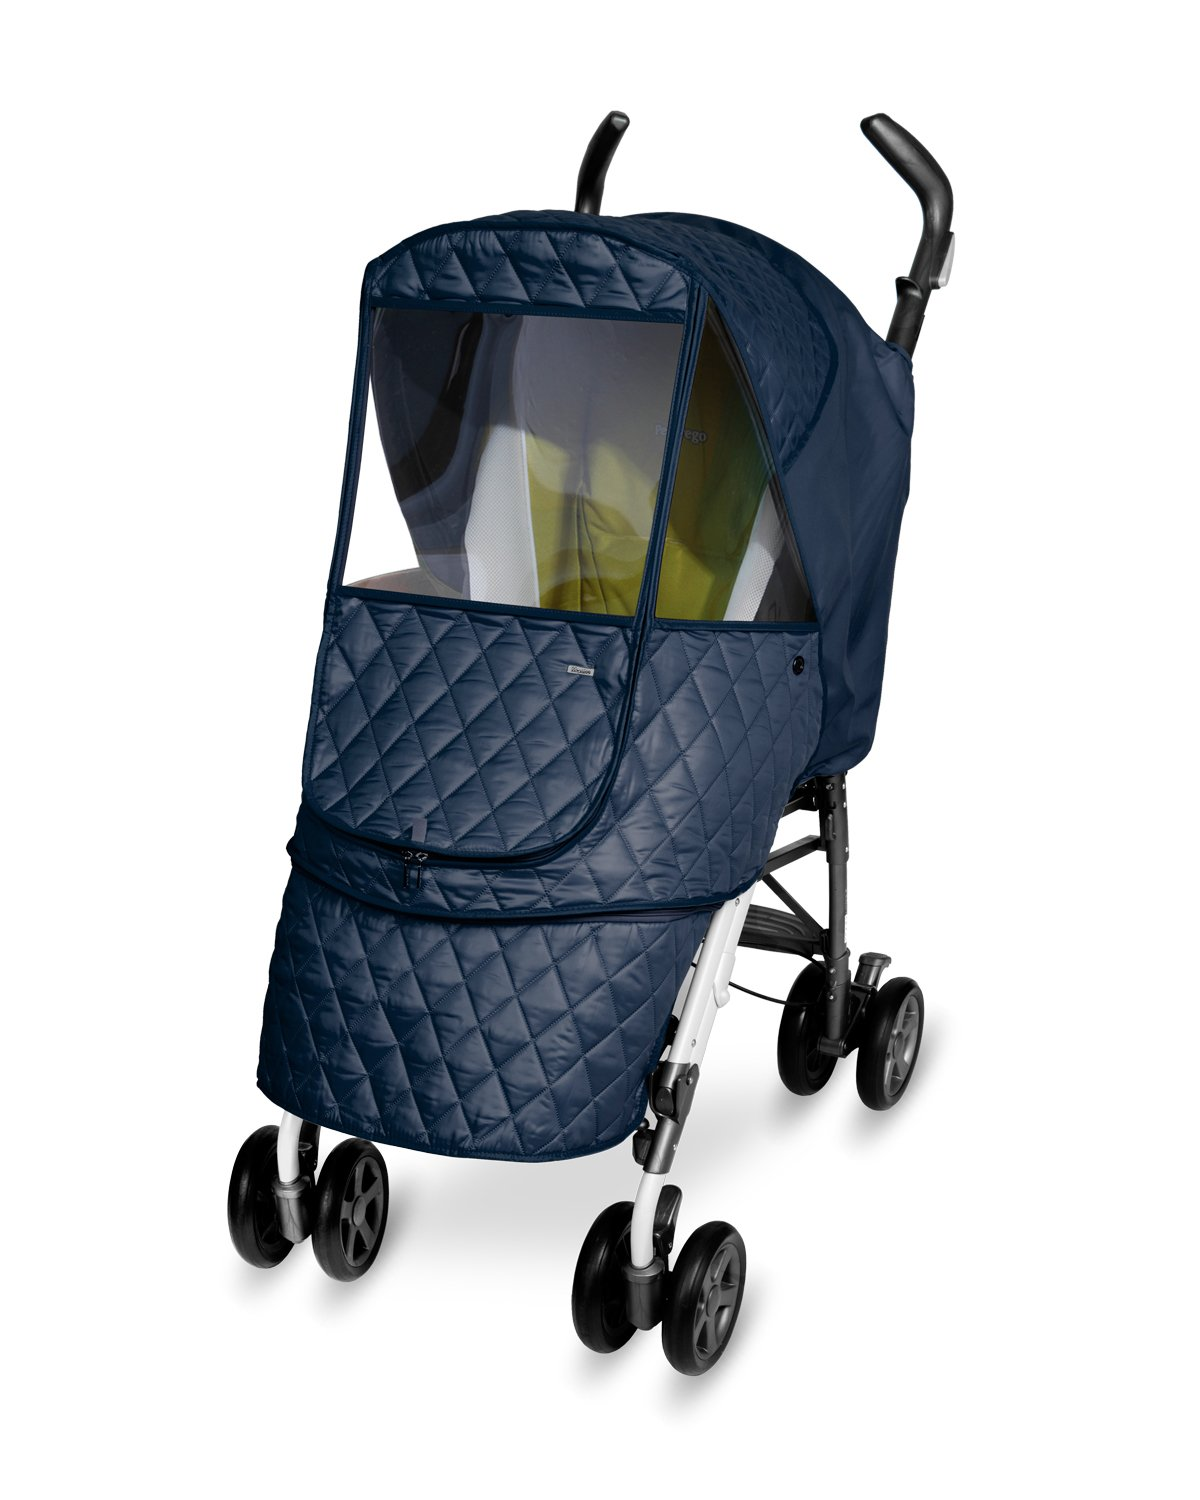 Manito Castle Alpha Stroller Weather Shield (Navy) by Manito